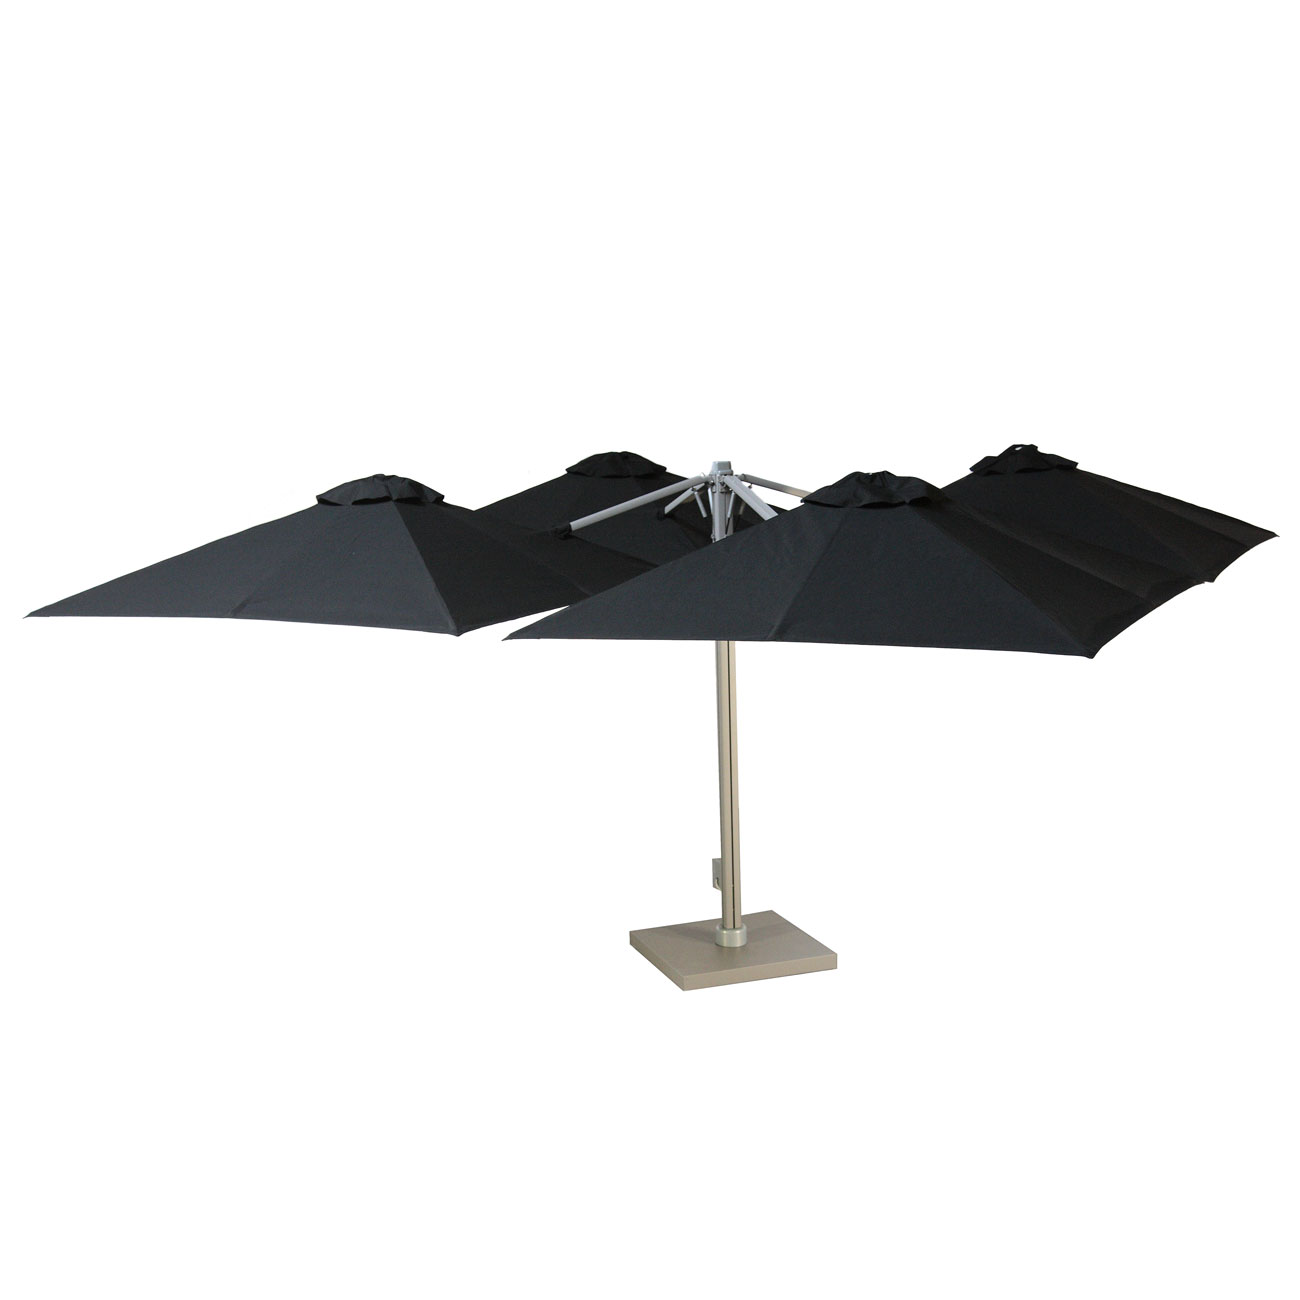 Prostor P6 Multi Cantilever Parasol Luxury Outdoor Living